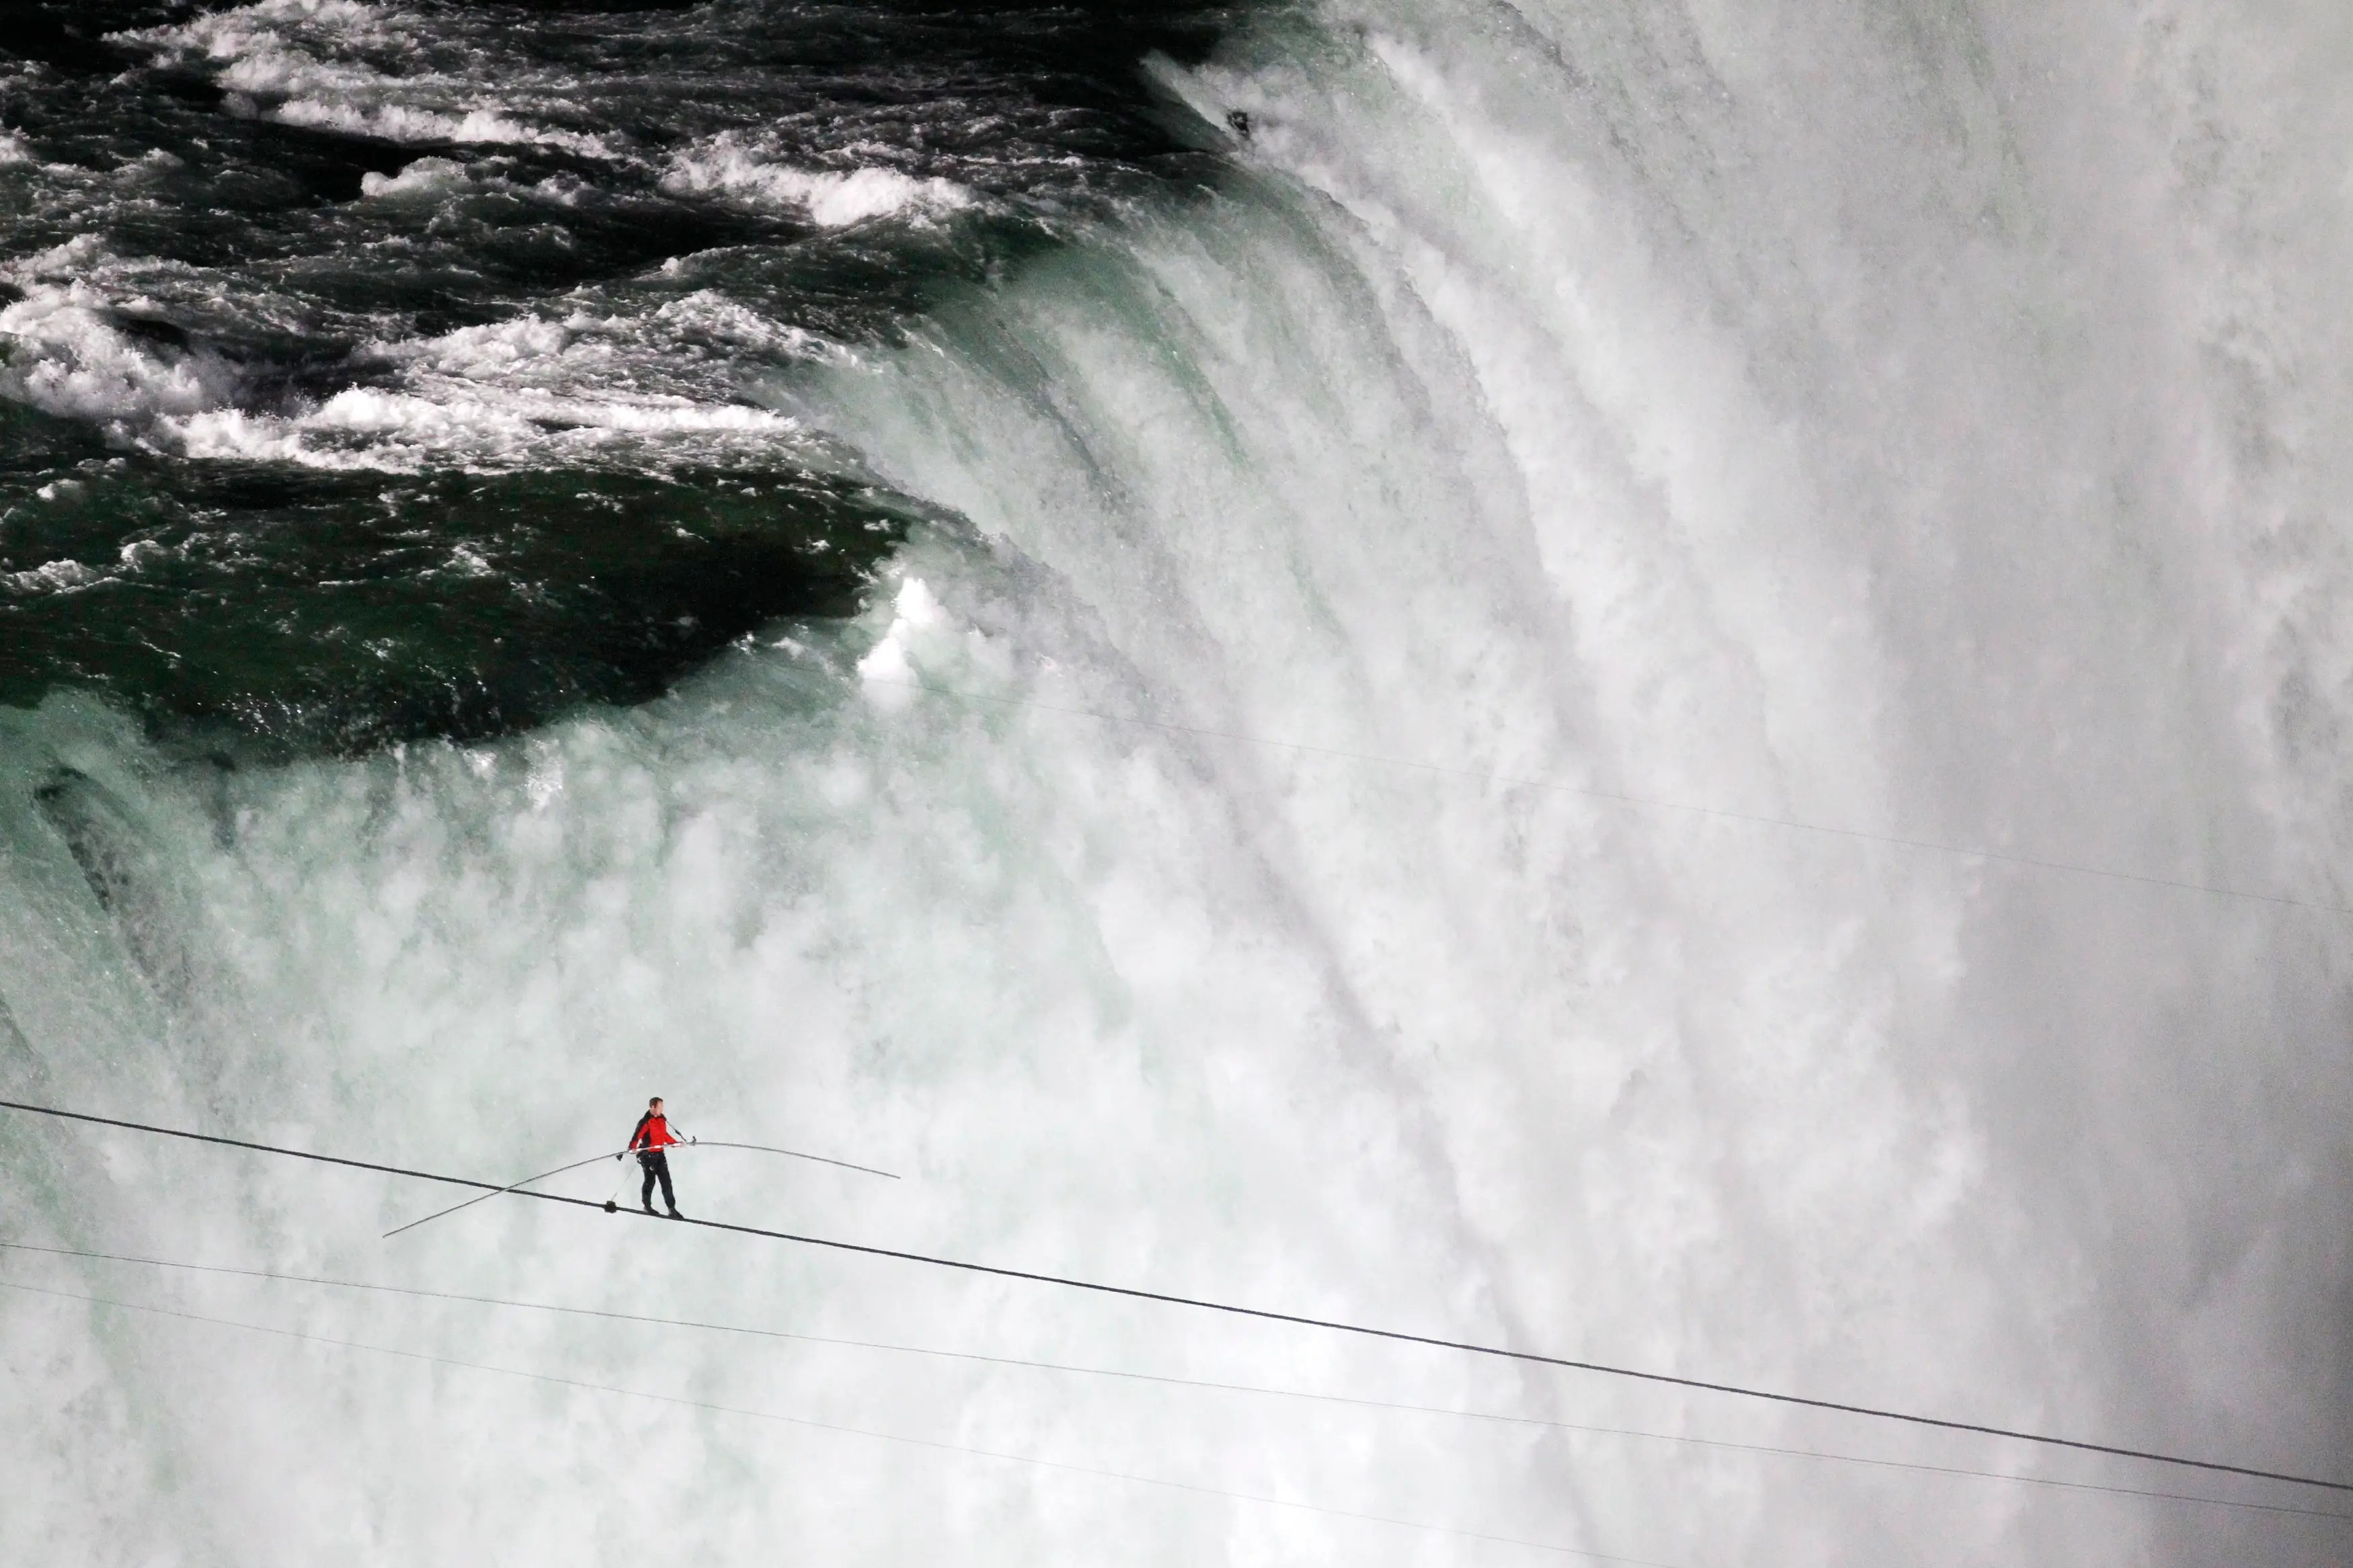 Tightrope walker Nik Wallenda walks the high wire from the U.S. side to the Canadian side over the Horseshoe Falls in Niagara Falls, Ontario.